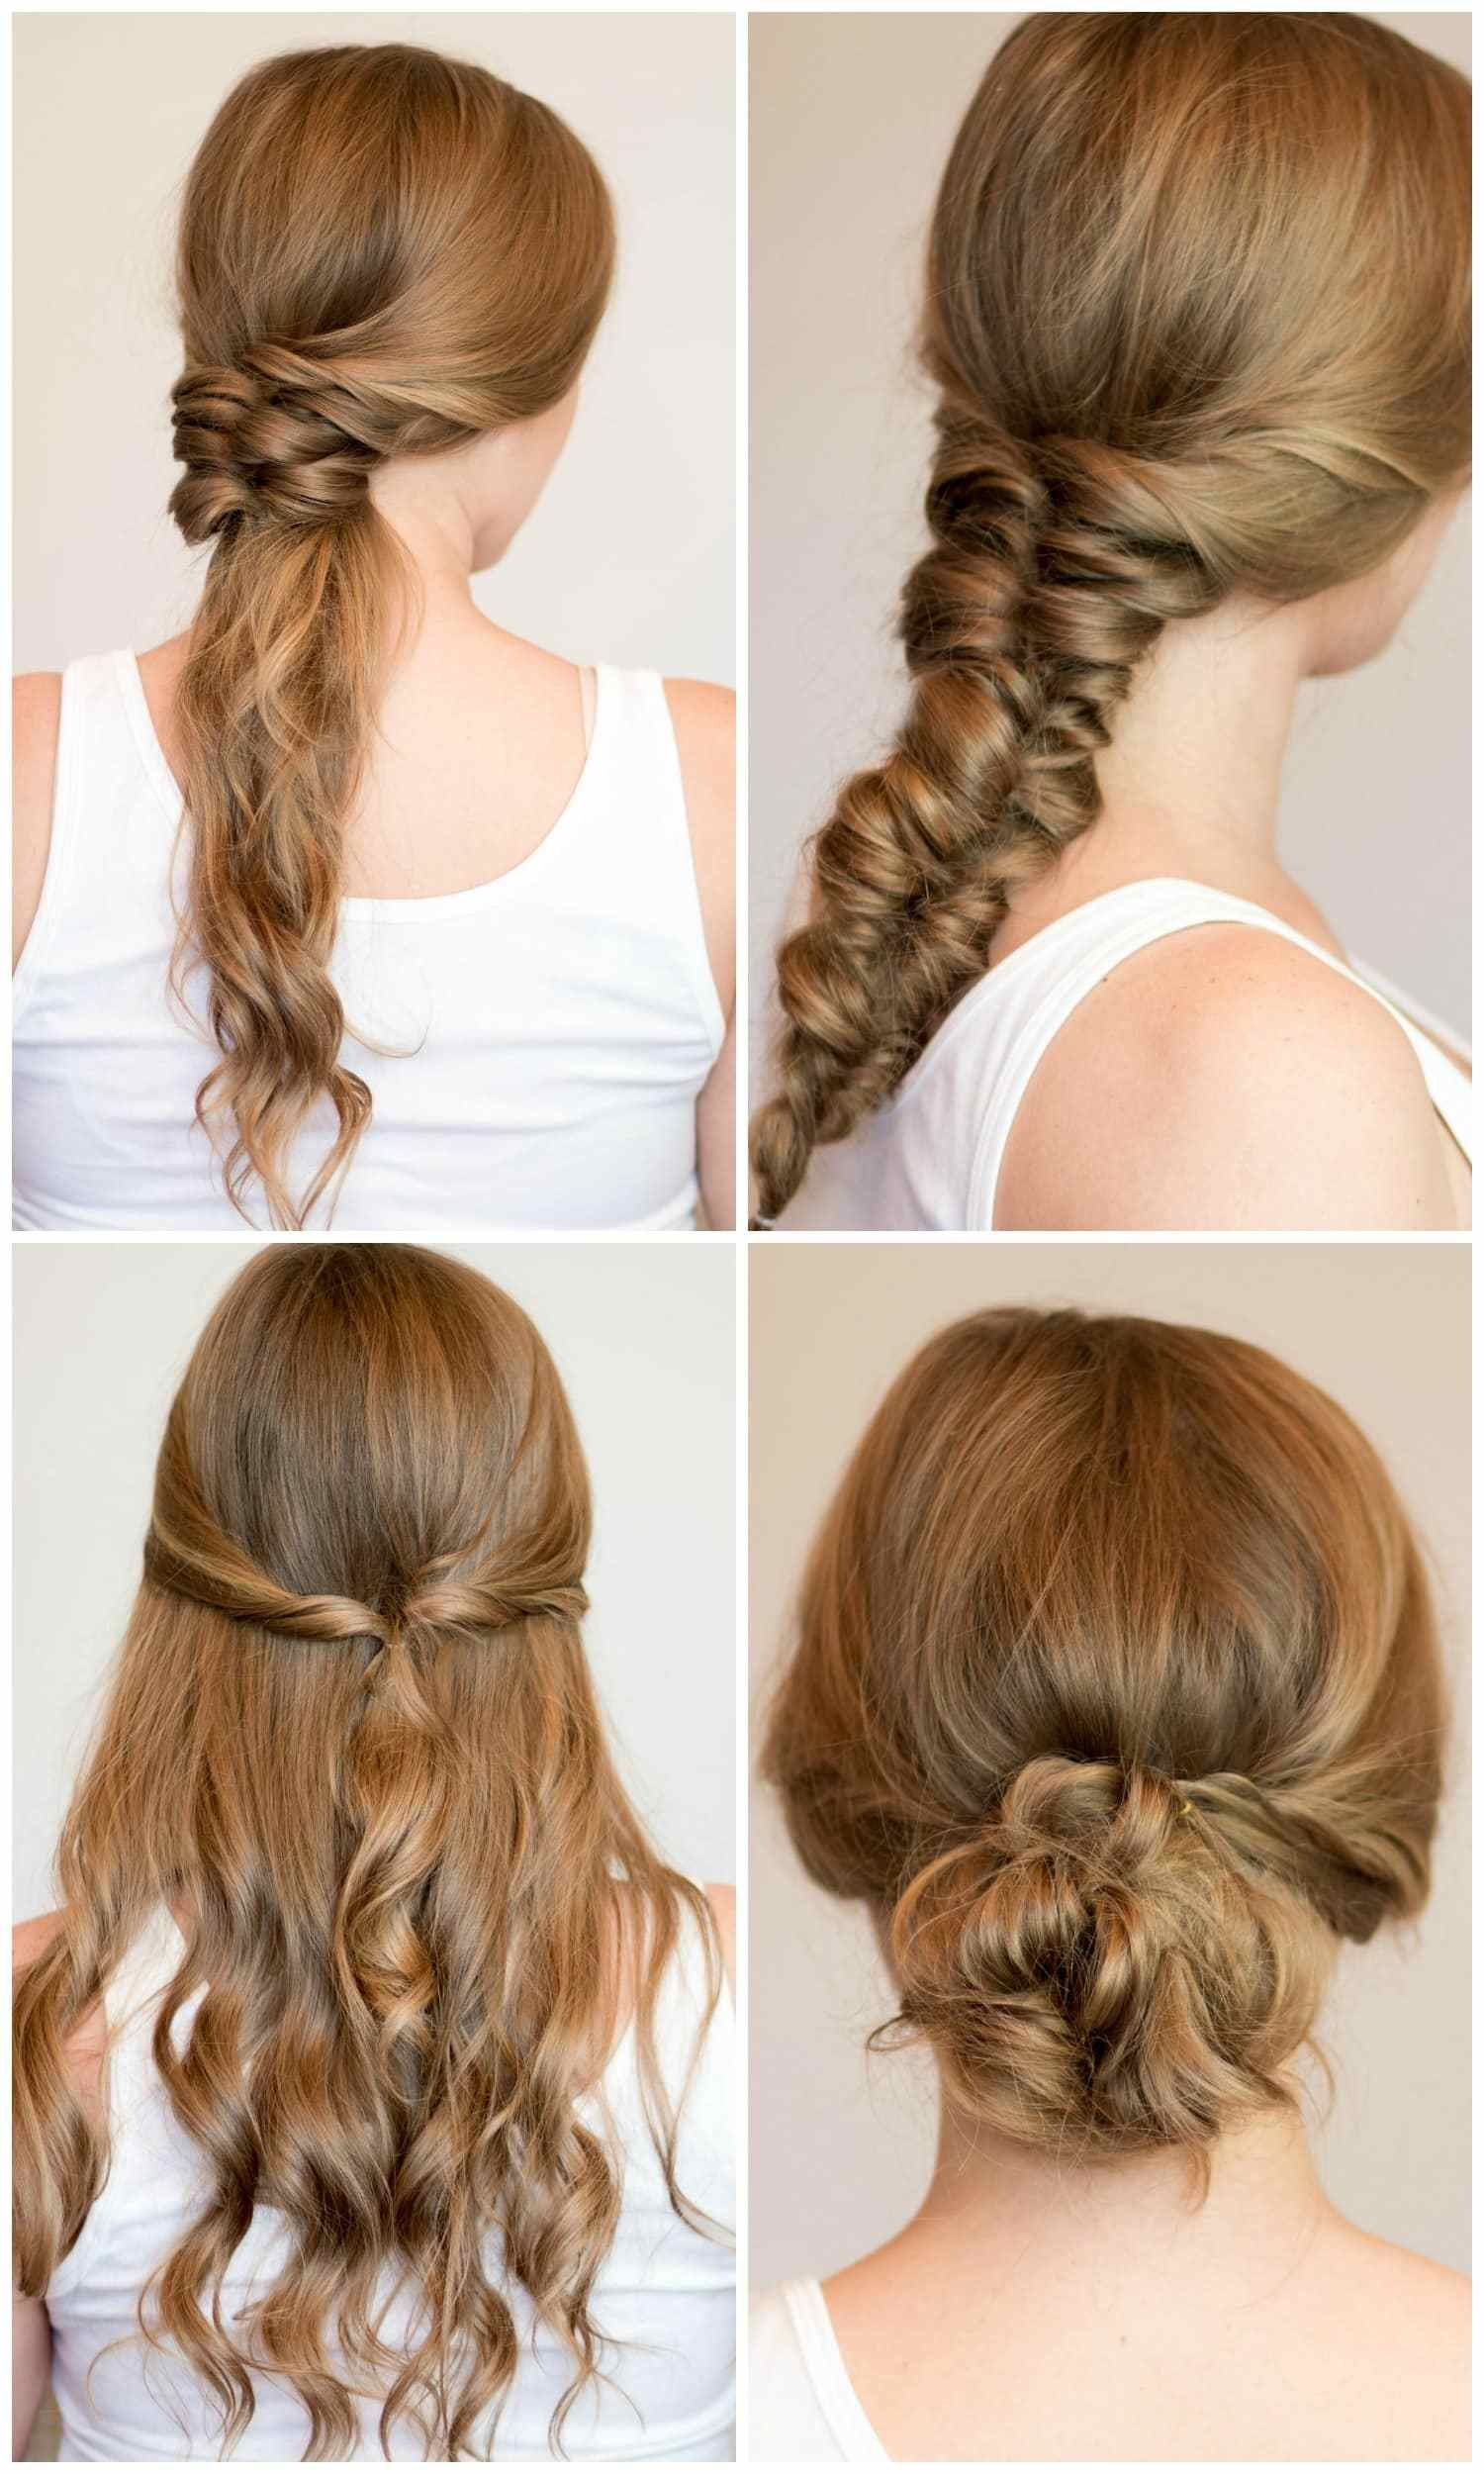 The Best Easy Heatless Hairstyles For Long Hair Ashley Brooke Nicholas Pictures